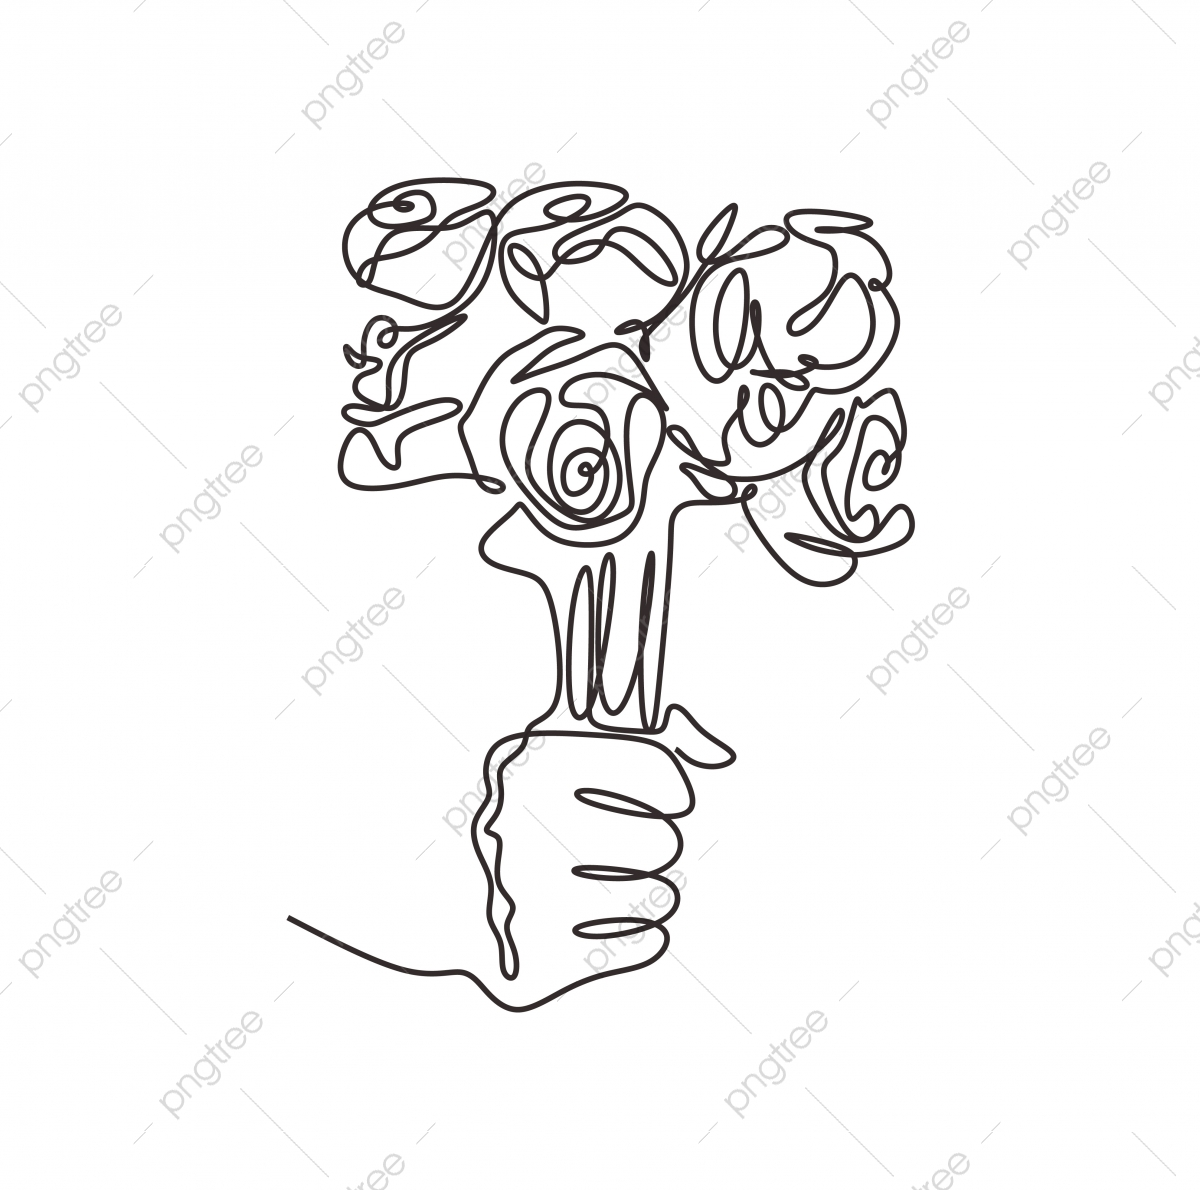 Hand Holding Bouquet Of Rose Flowers Minimalism Continuous One Line Drawing Bouquet Flower Rose Png And Vector With Transparent Background For Free Download